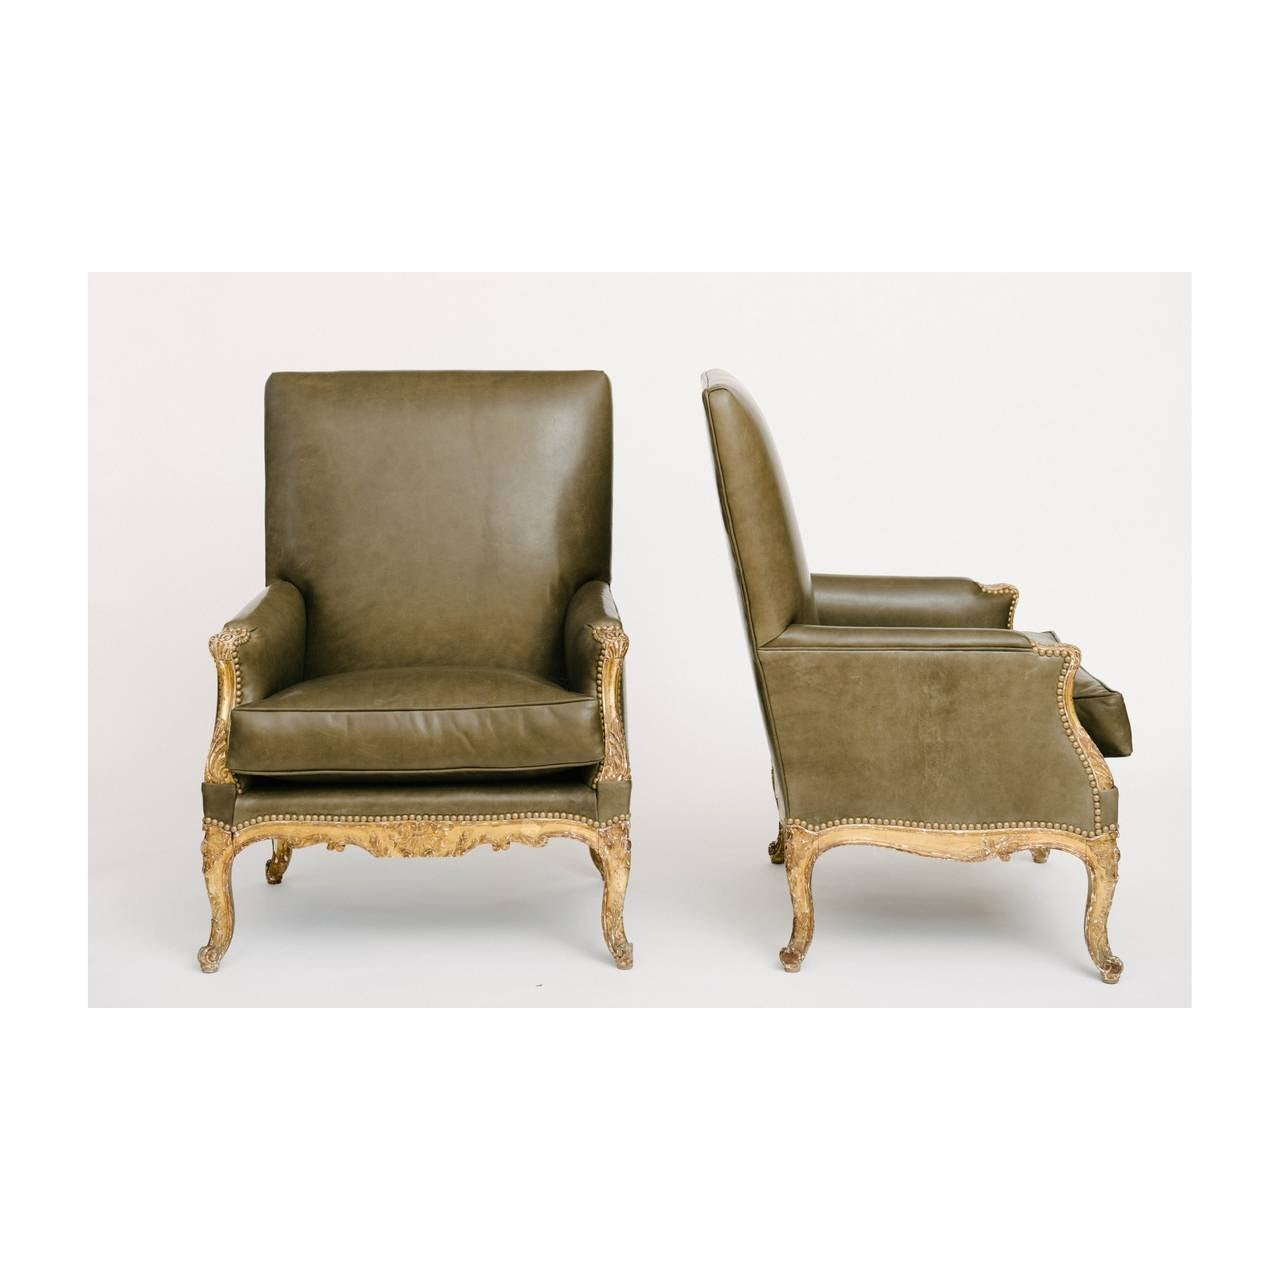 Pair of French Louis XV style giltwood bergères newly upholstered in leather.